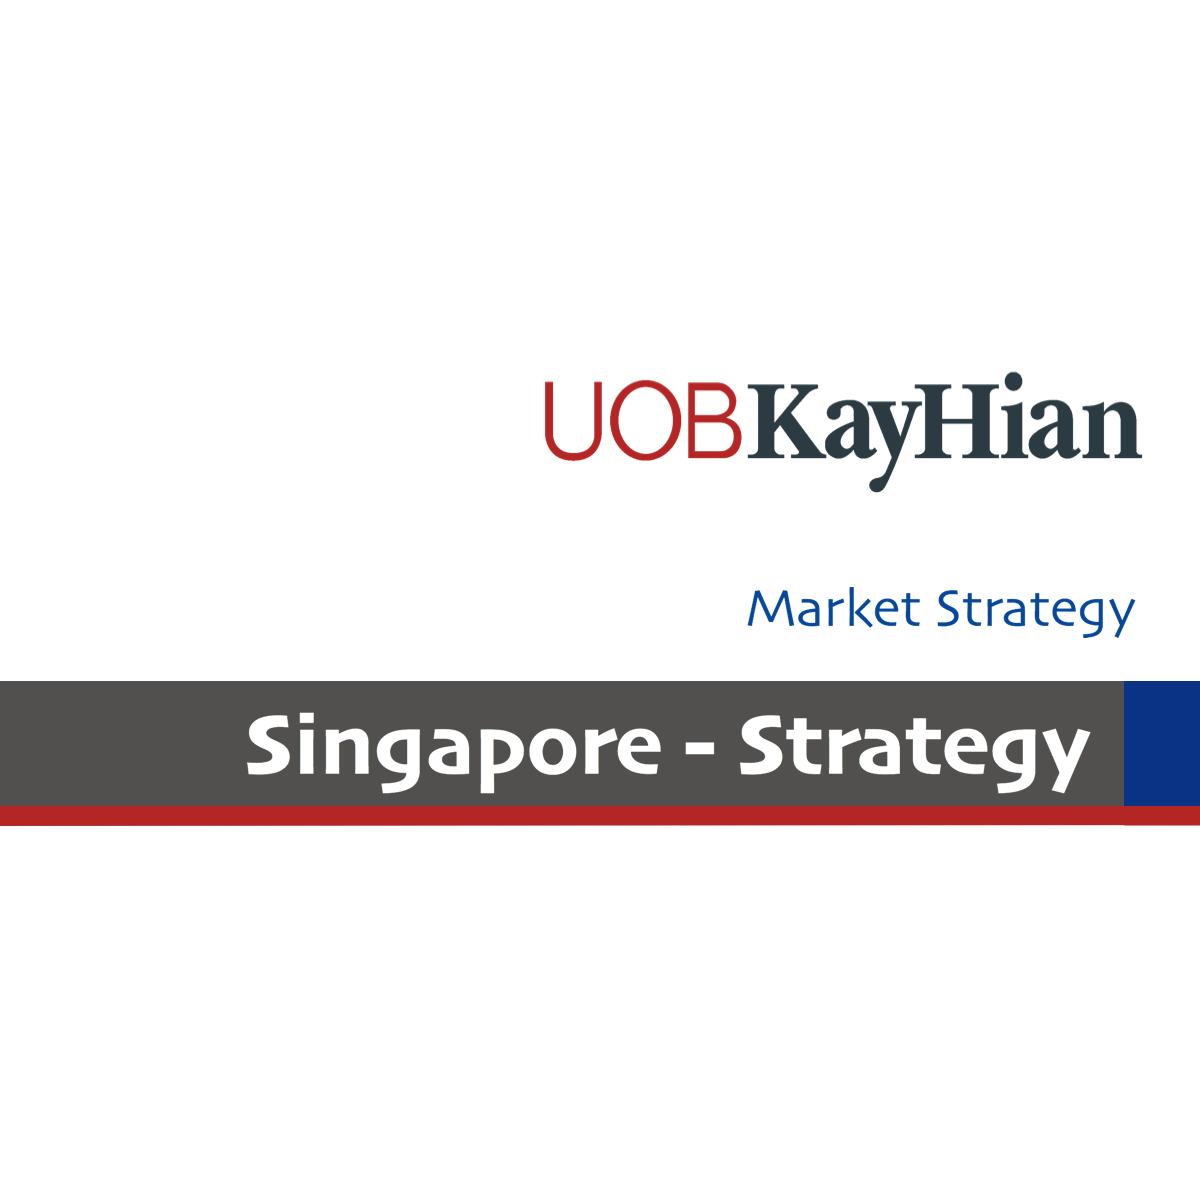 Singapore Strategy - UOB Kay Hian 2017-11-18: 3Q17 Report Card In Line But Upward Earnings Revision In 2018